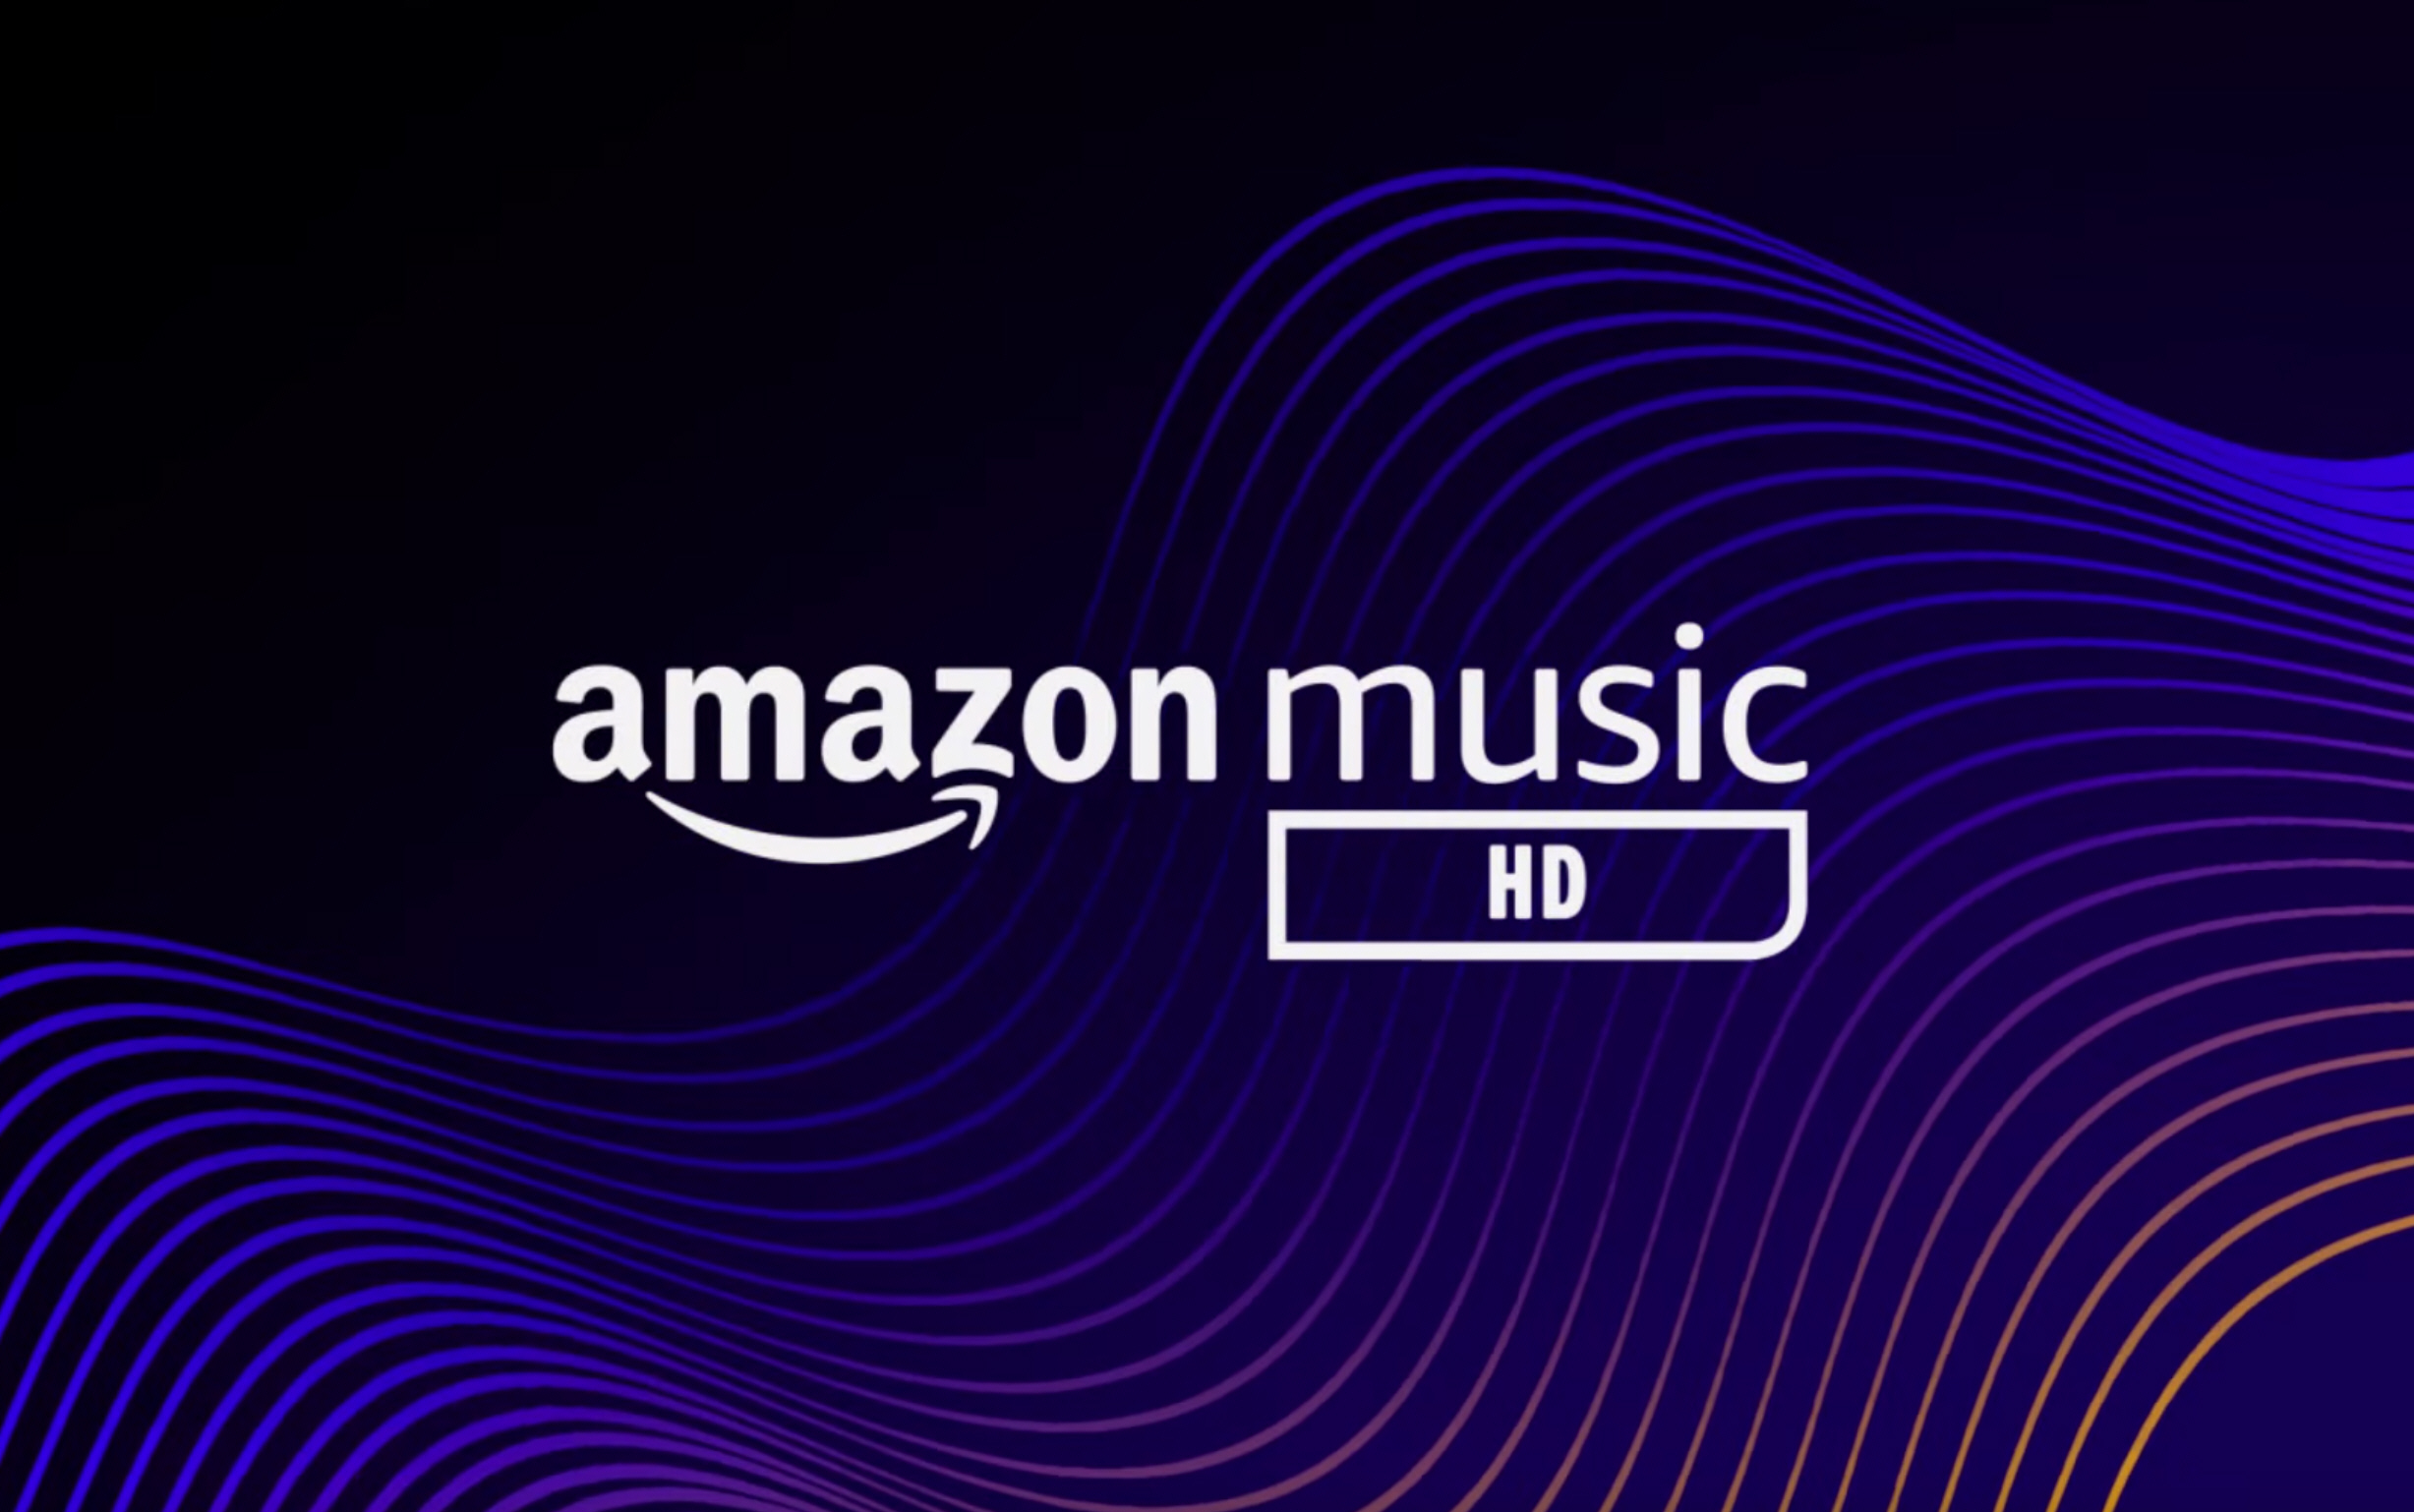 Amazon launches HD music streaming